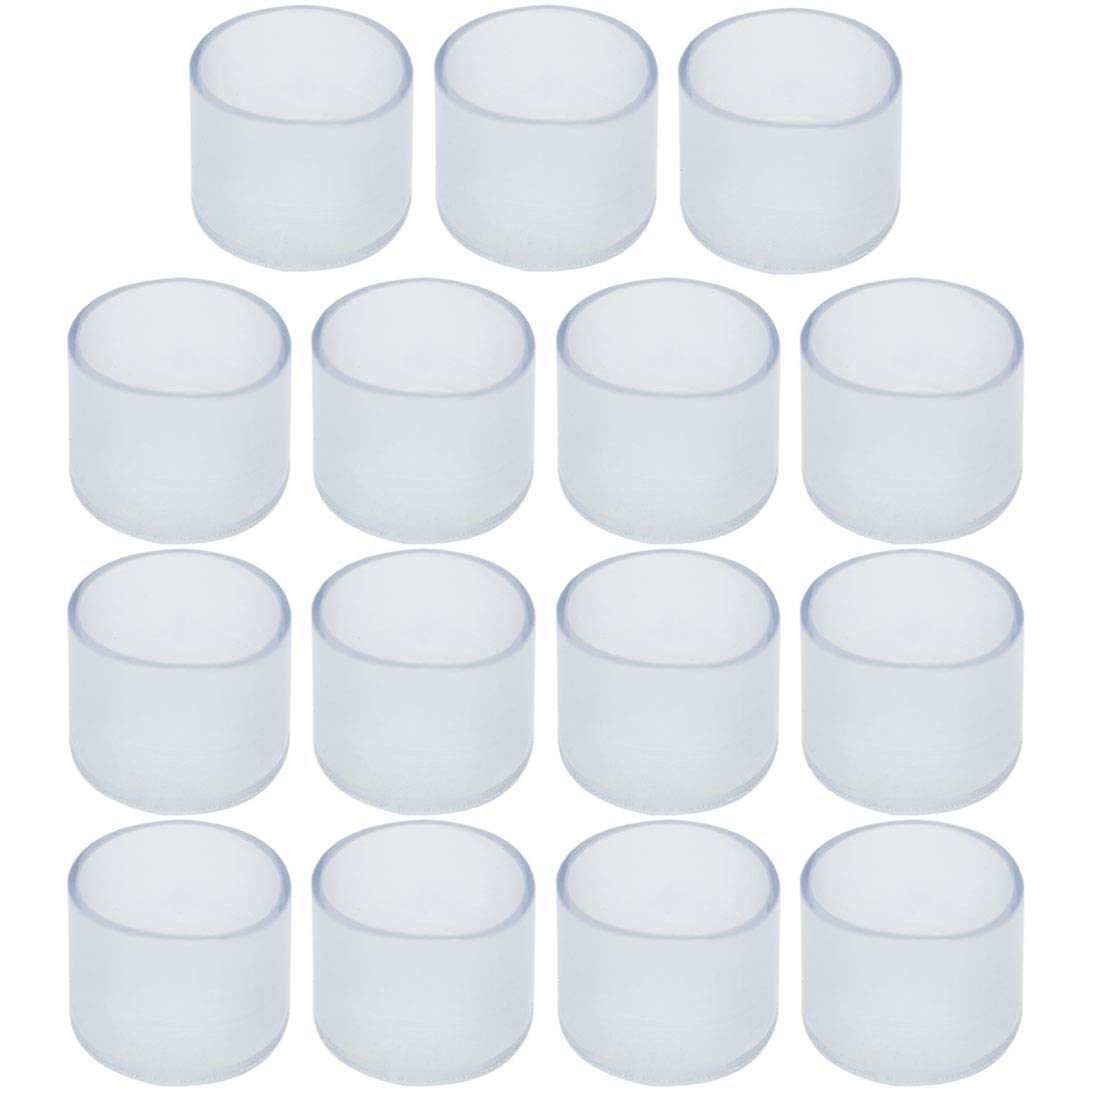 uxcell Clear PVC Chair Leg Caps End Tip Feet Cover Furniture Glide Floor Protector 15pcs 0.79 20mm Inner Diameter Reduce Noise Prevent Scratch